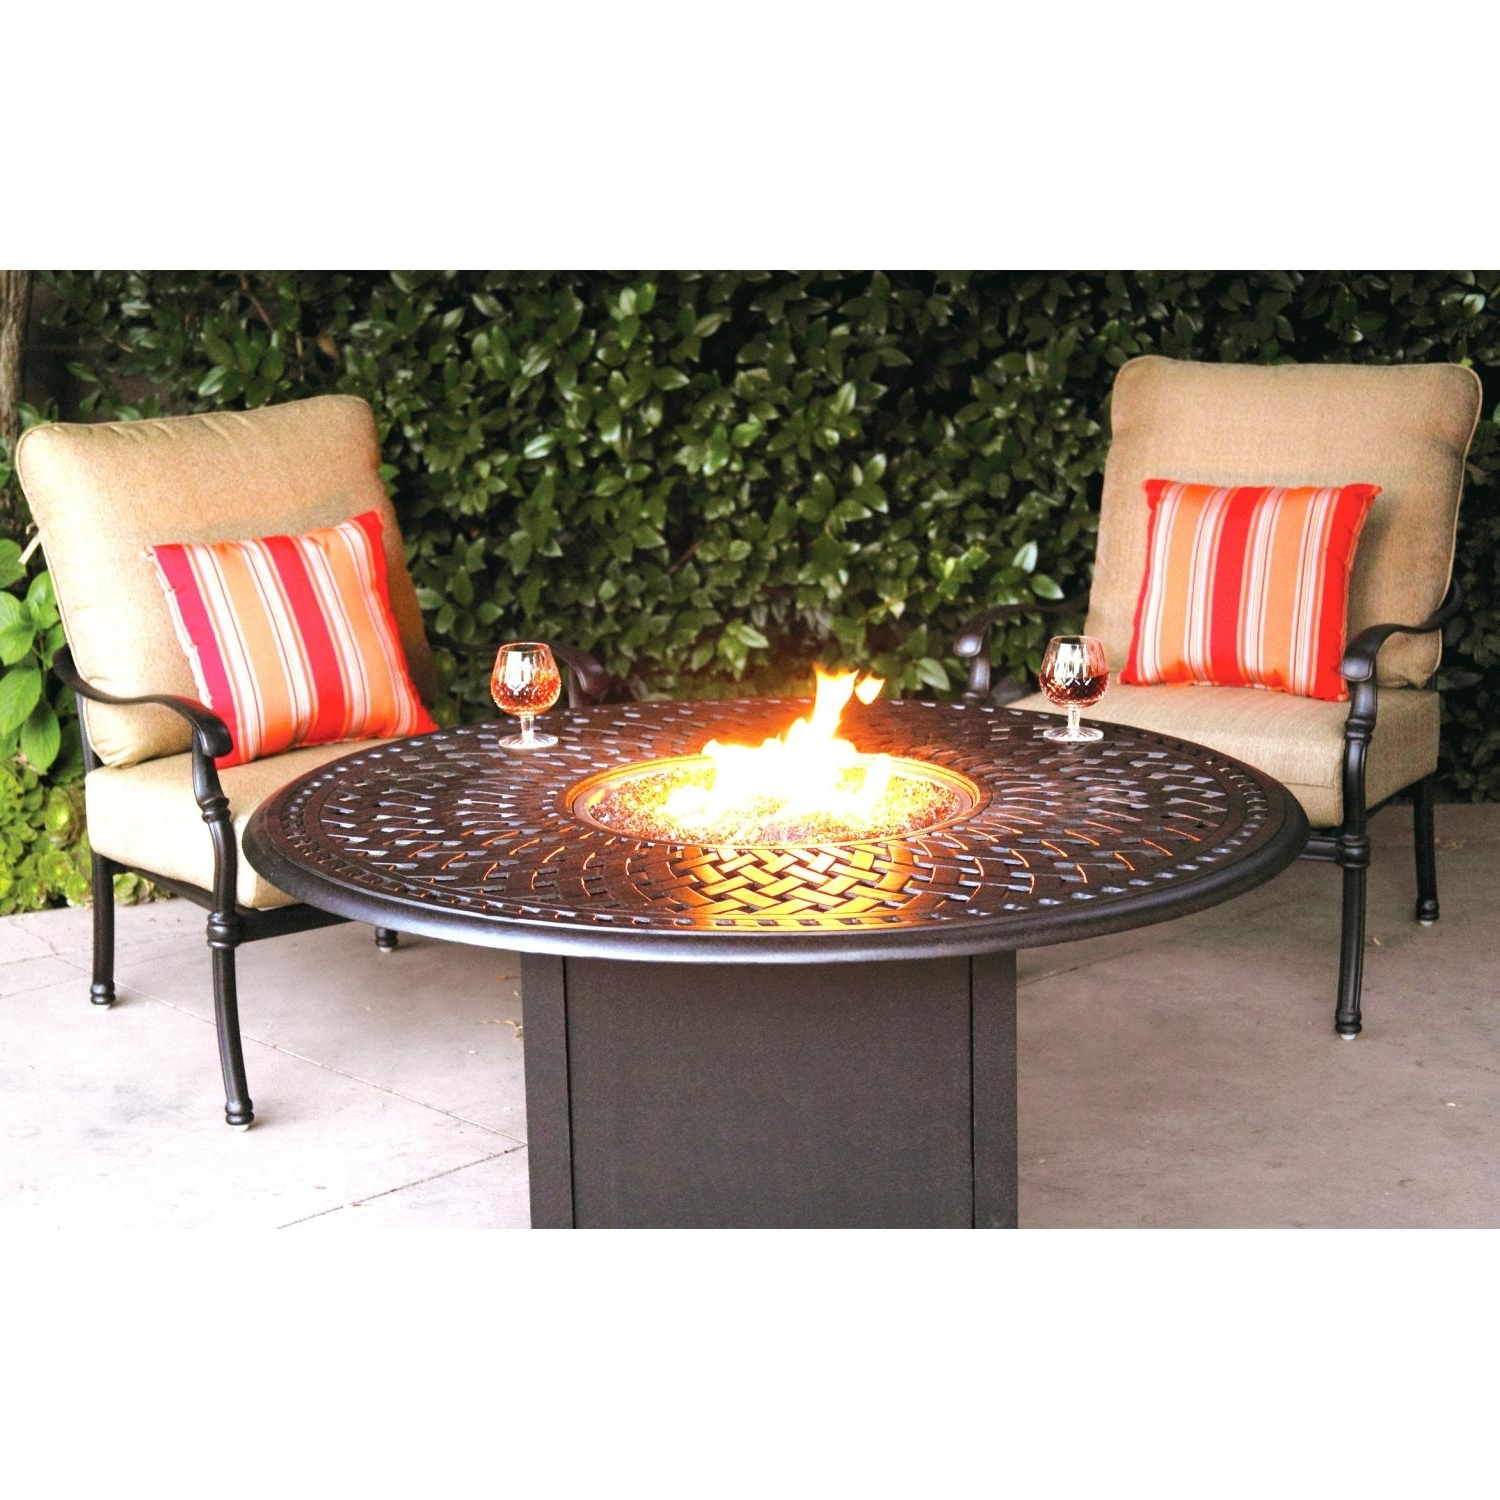 Darlee Florence 3 Piece Aluminum Patio Fire Pit Seating Set Intended For Fashionable Patio Furniture Conversation Sets With Fire Pit (View 9 of 20)